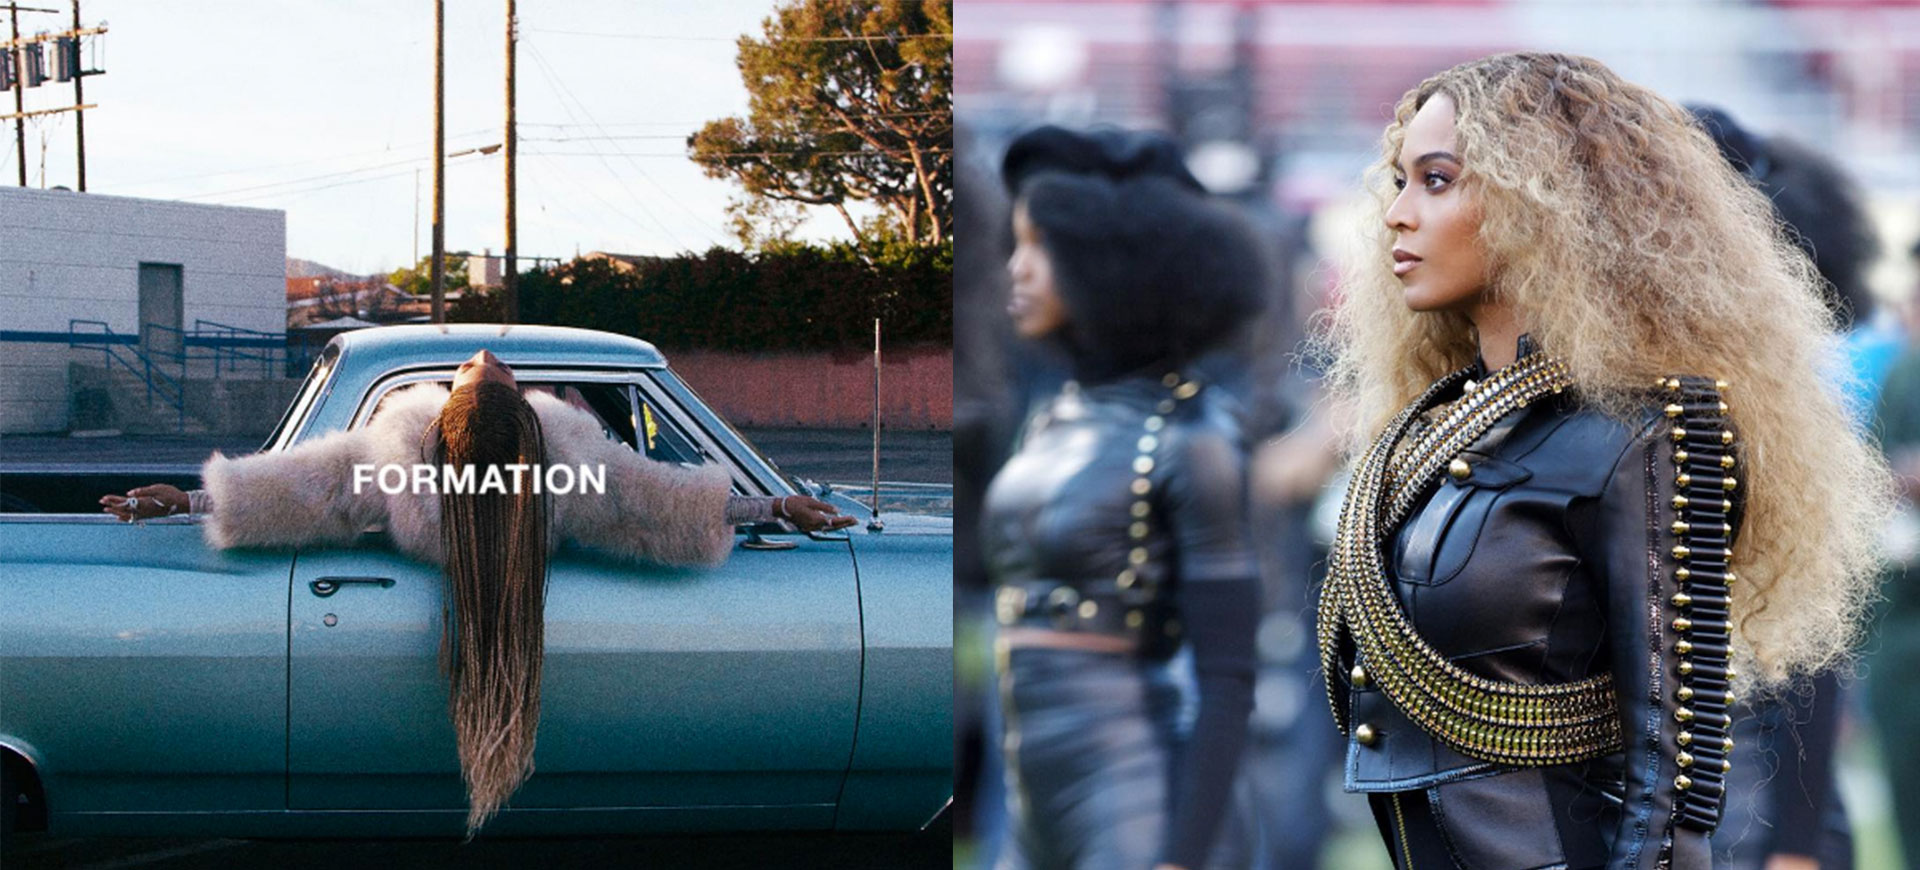 bey formation